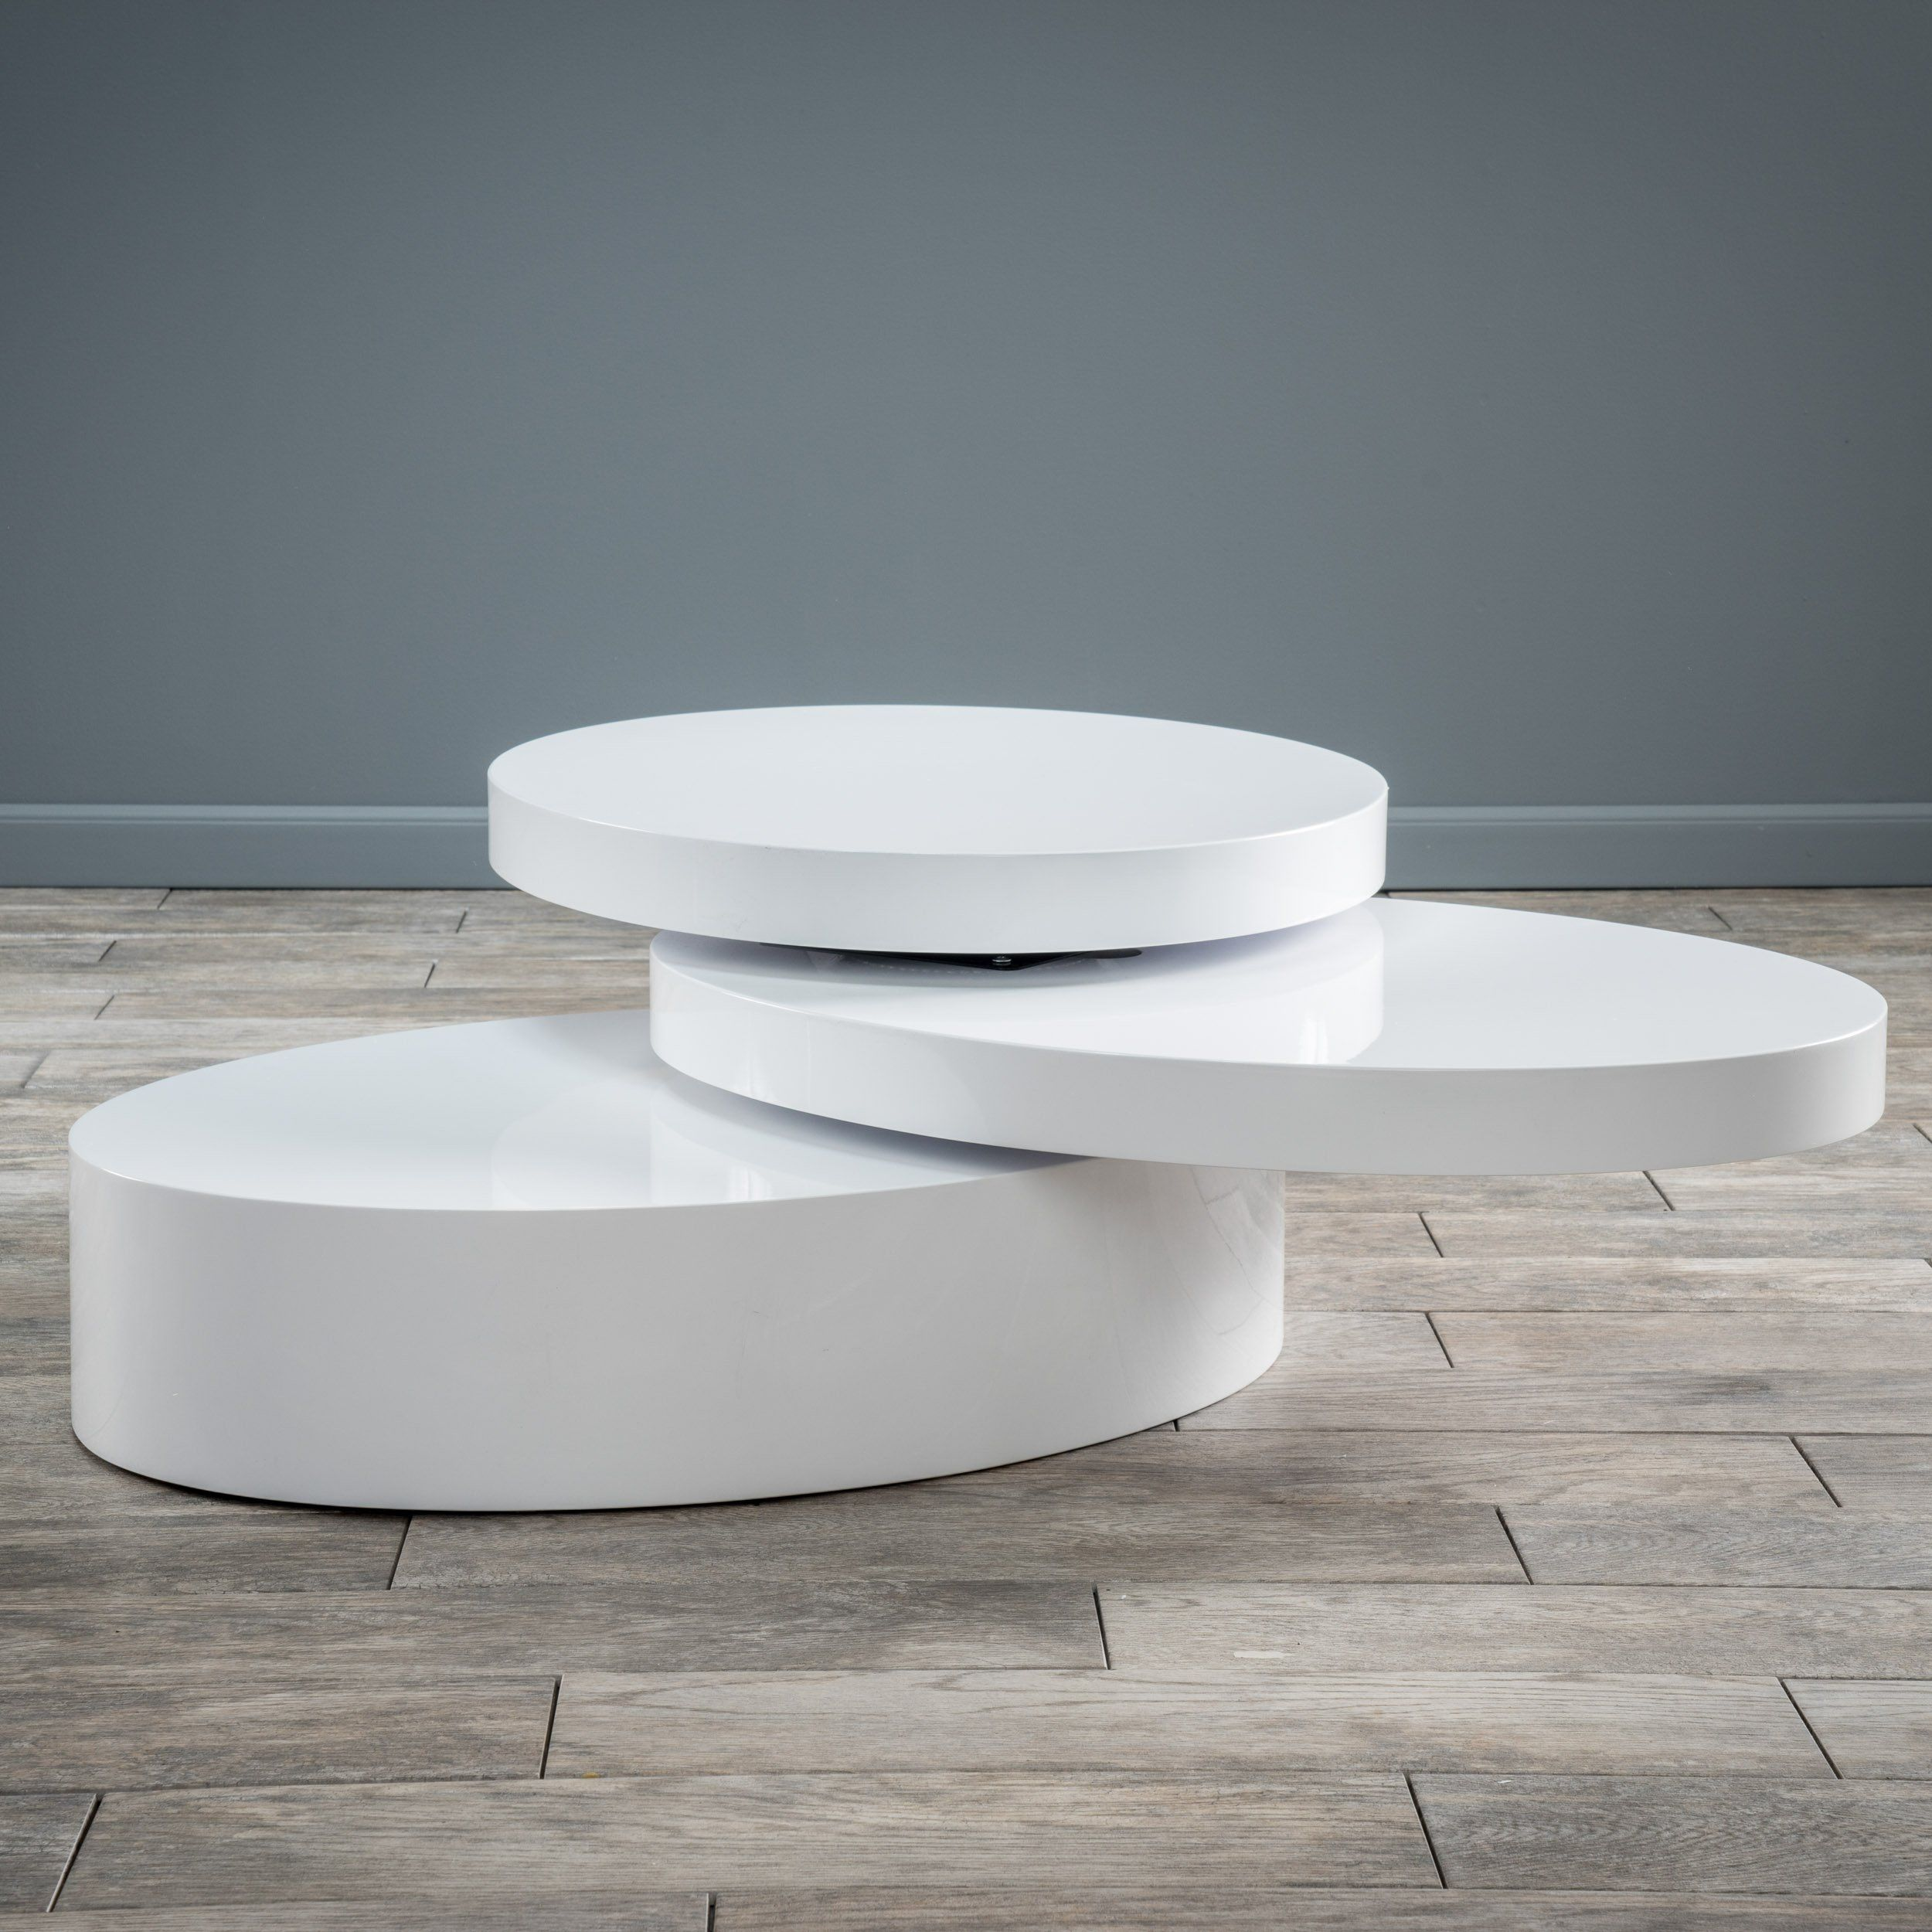 Kendall Oval Mod Swivel Coffee Table Review A Lot More At The Image Web Link This Is An Affiliate Coffeetables